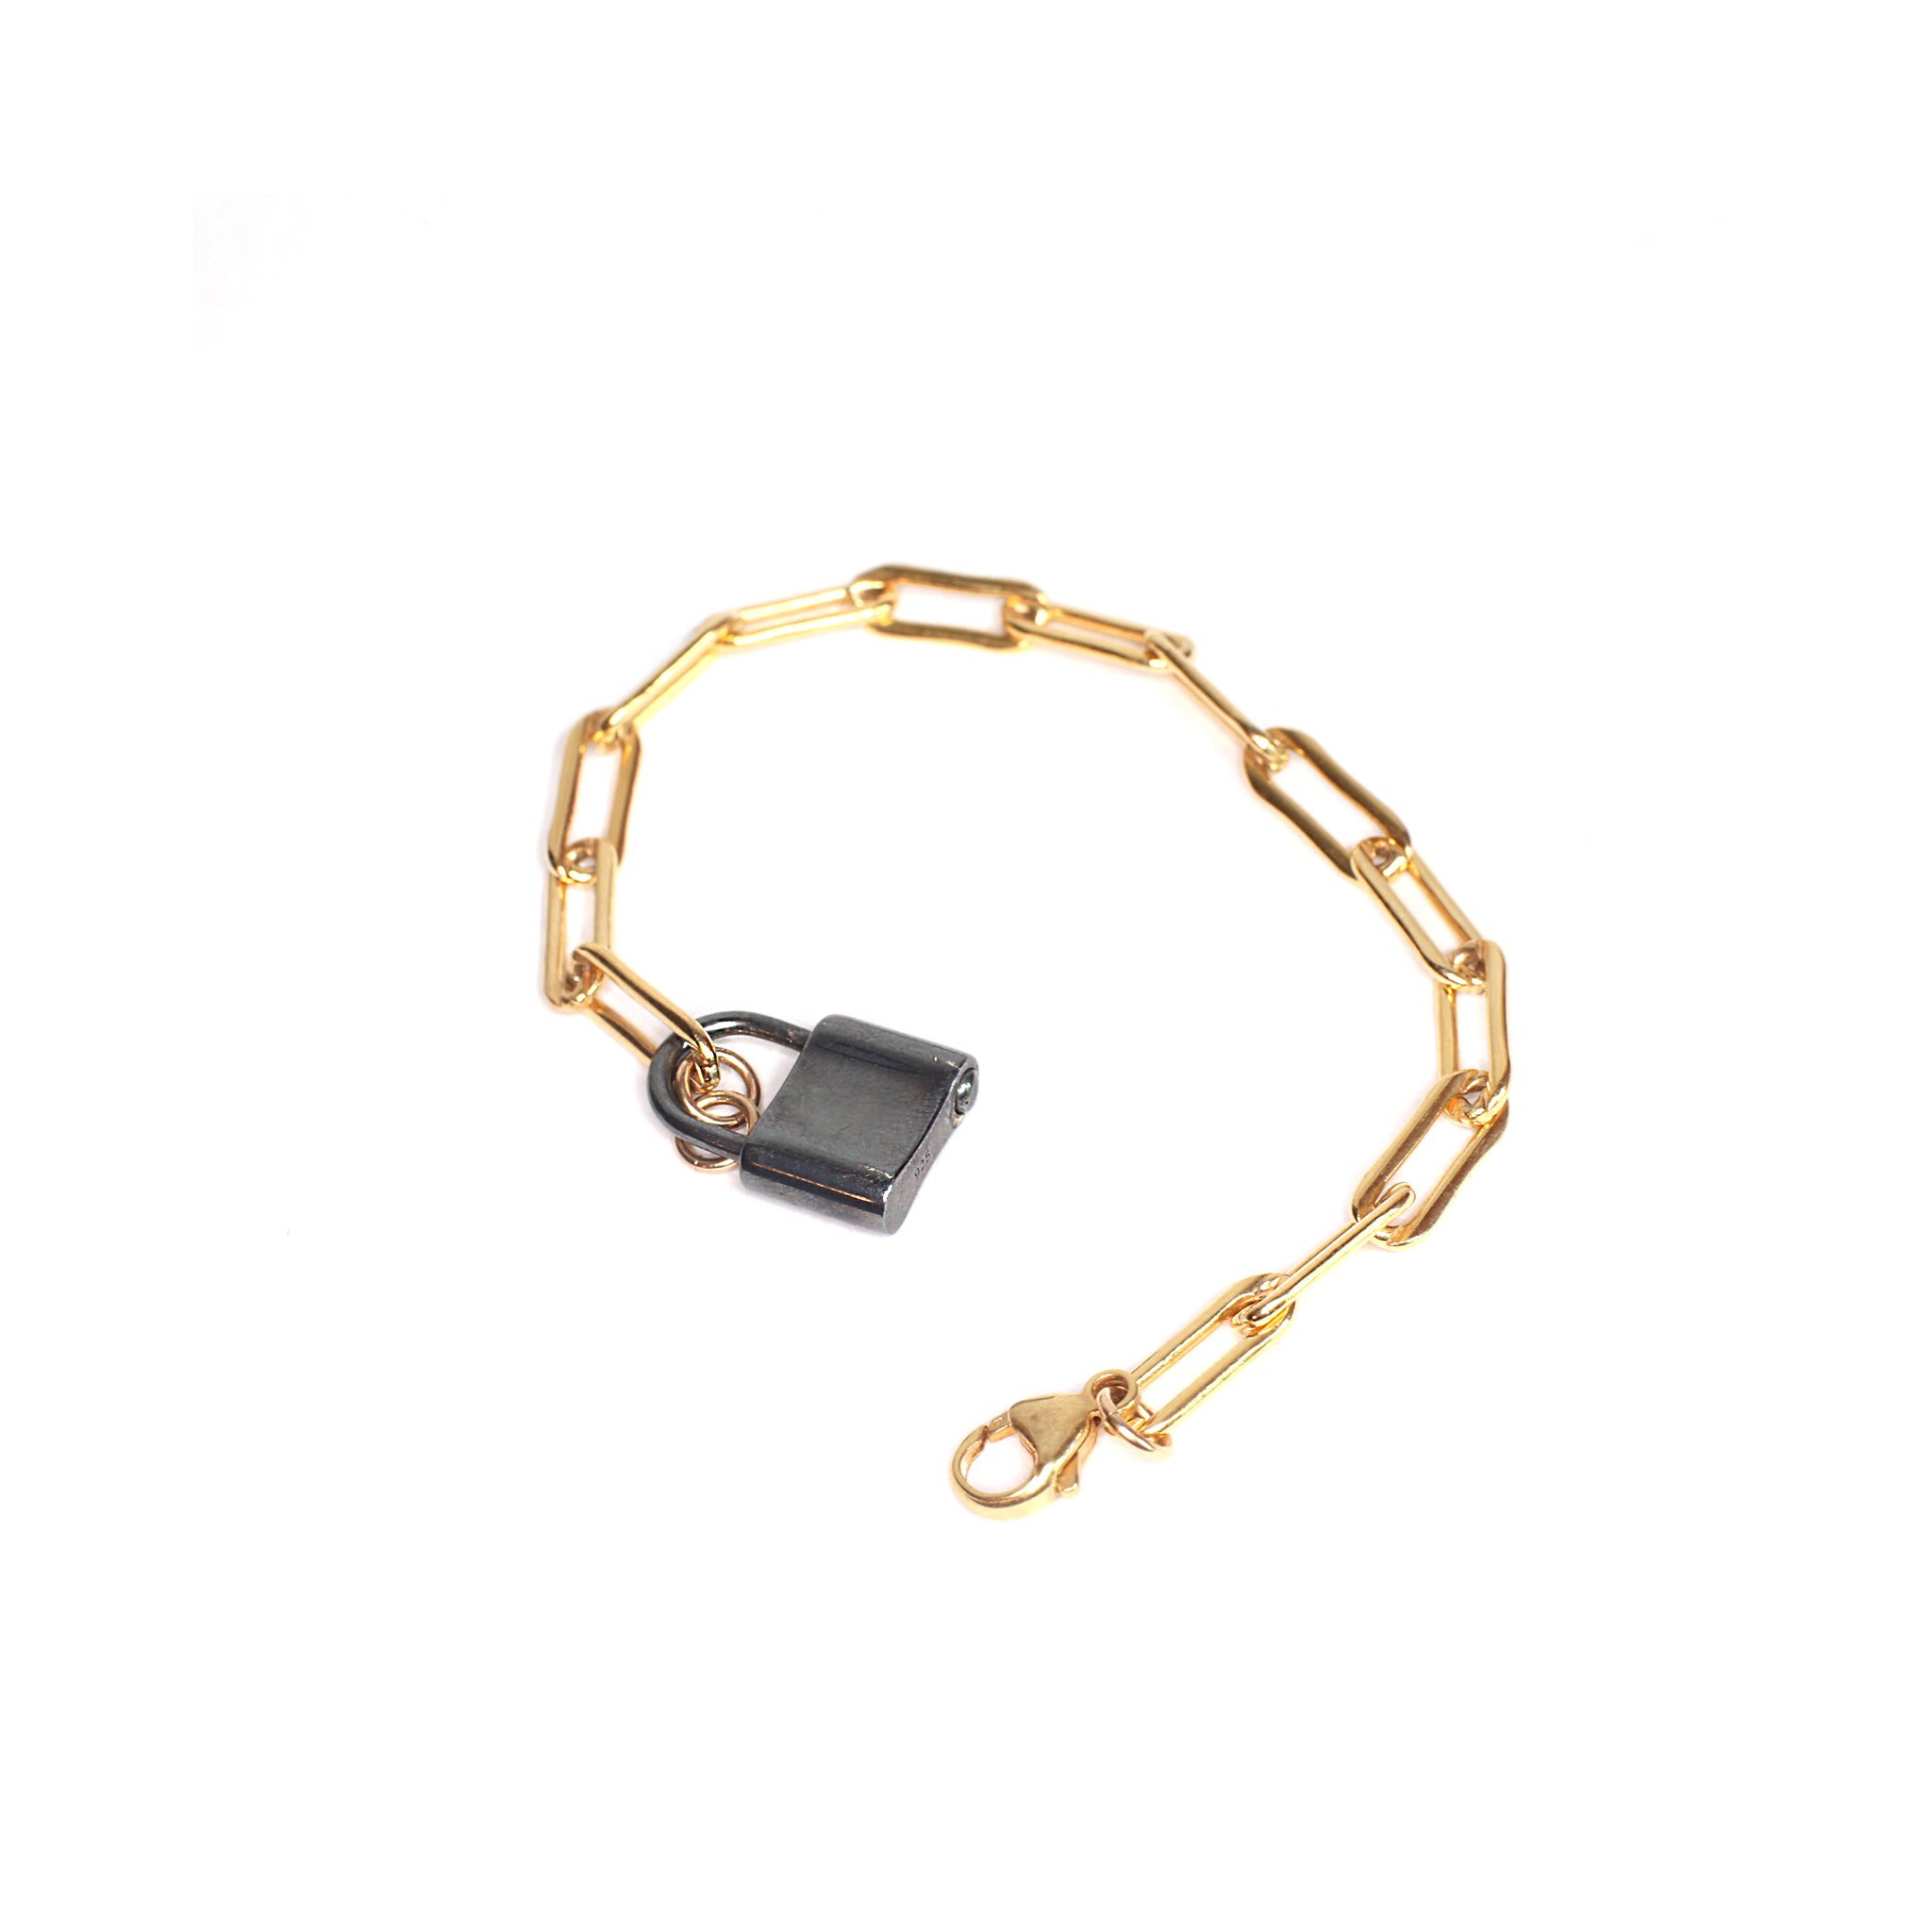 Mixed Metal Lovers Lock Bracelet